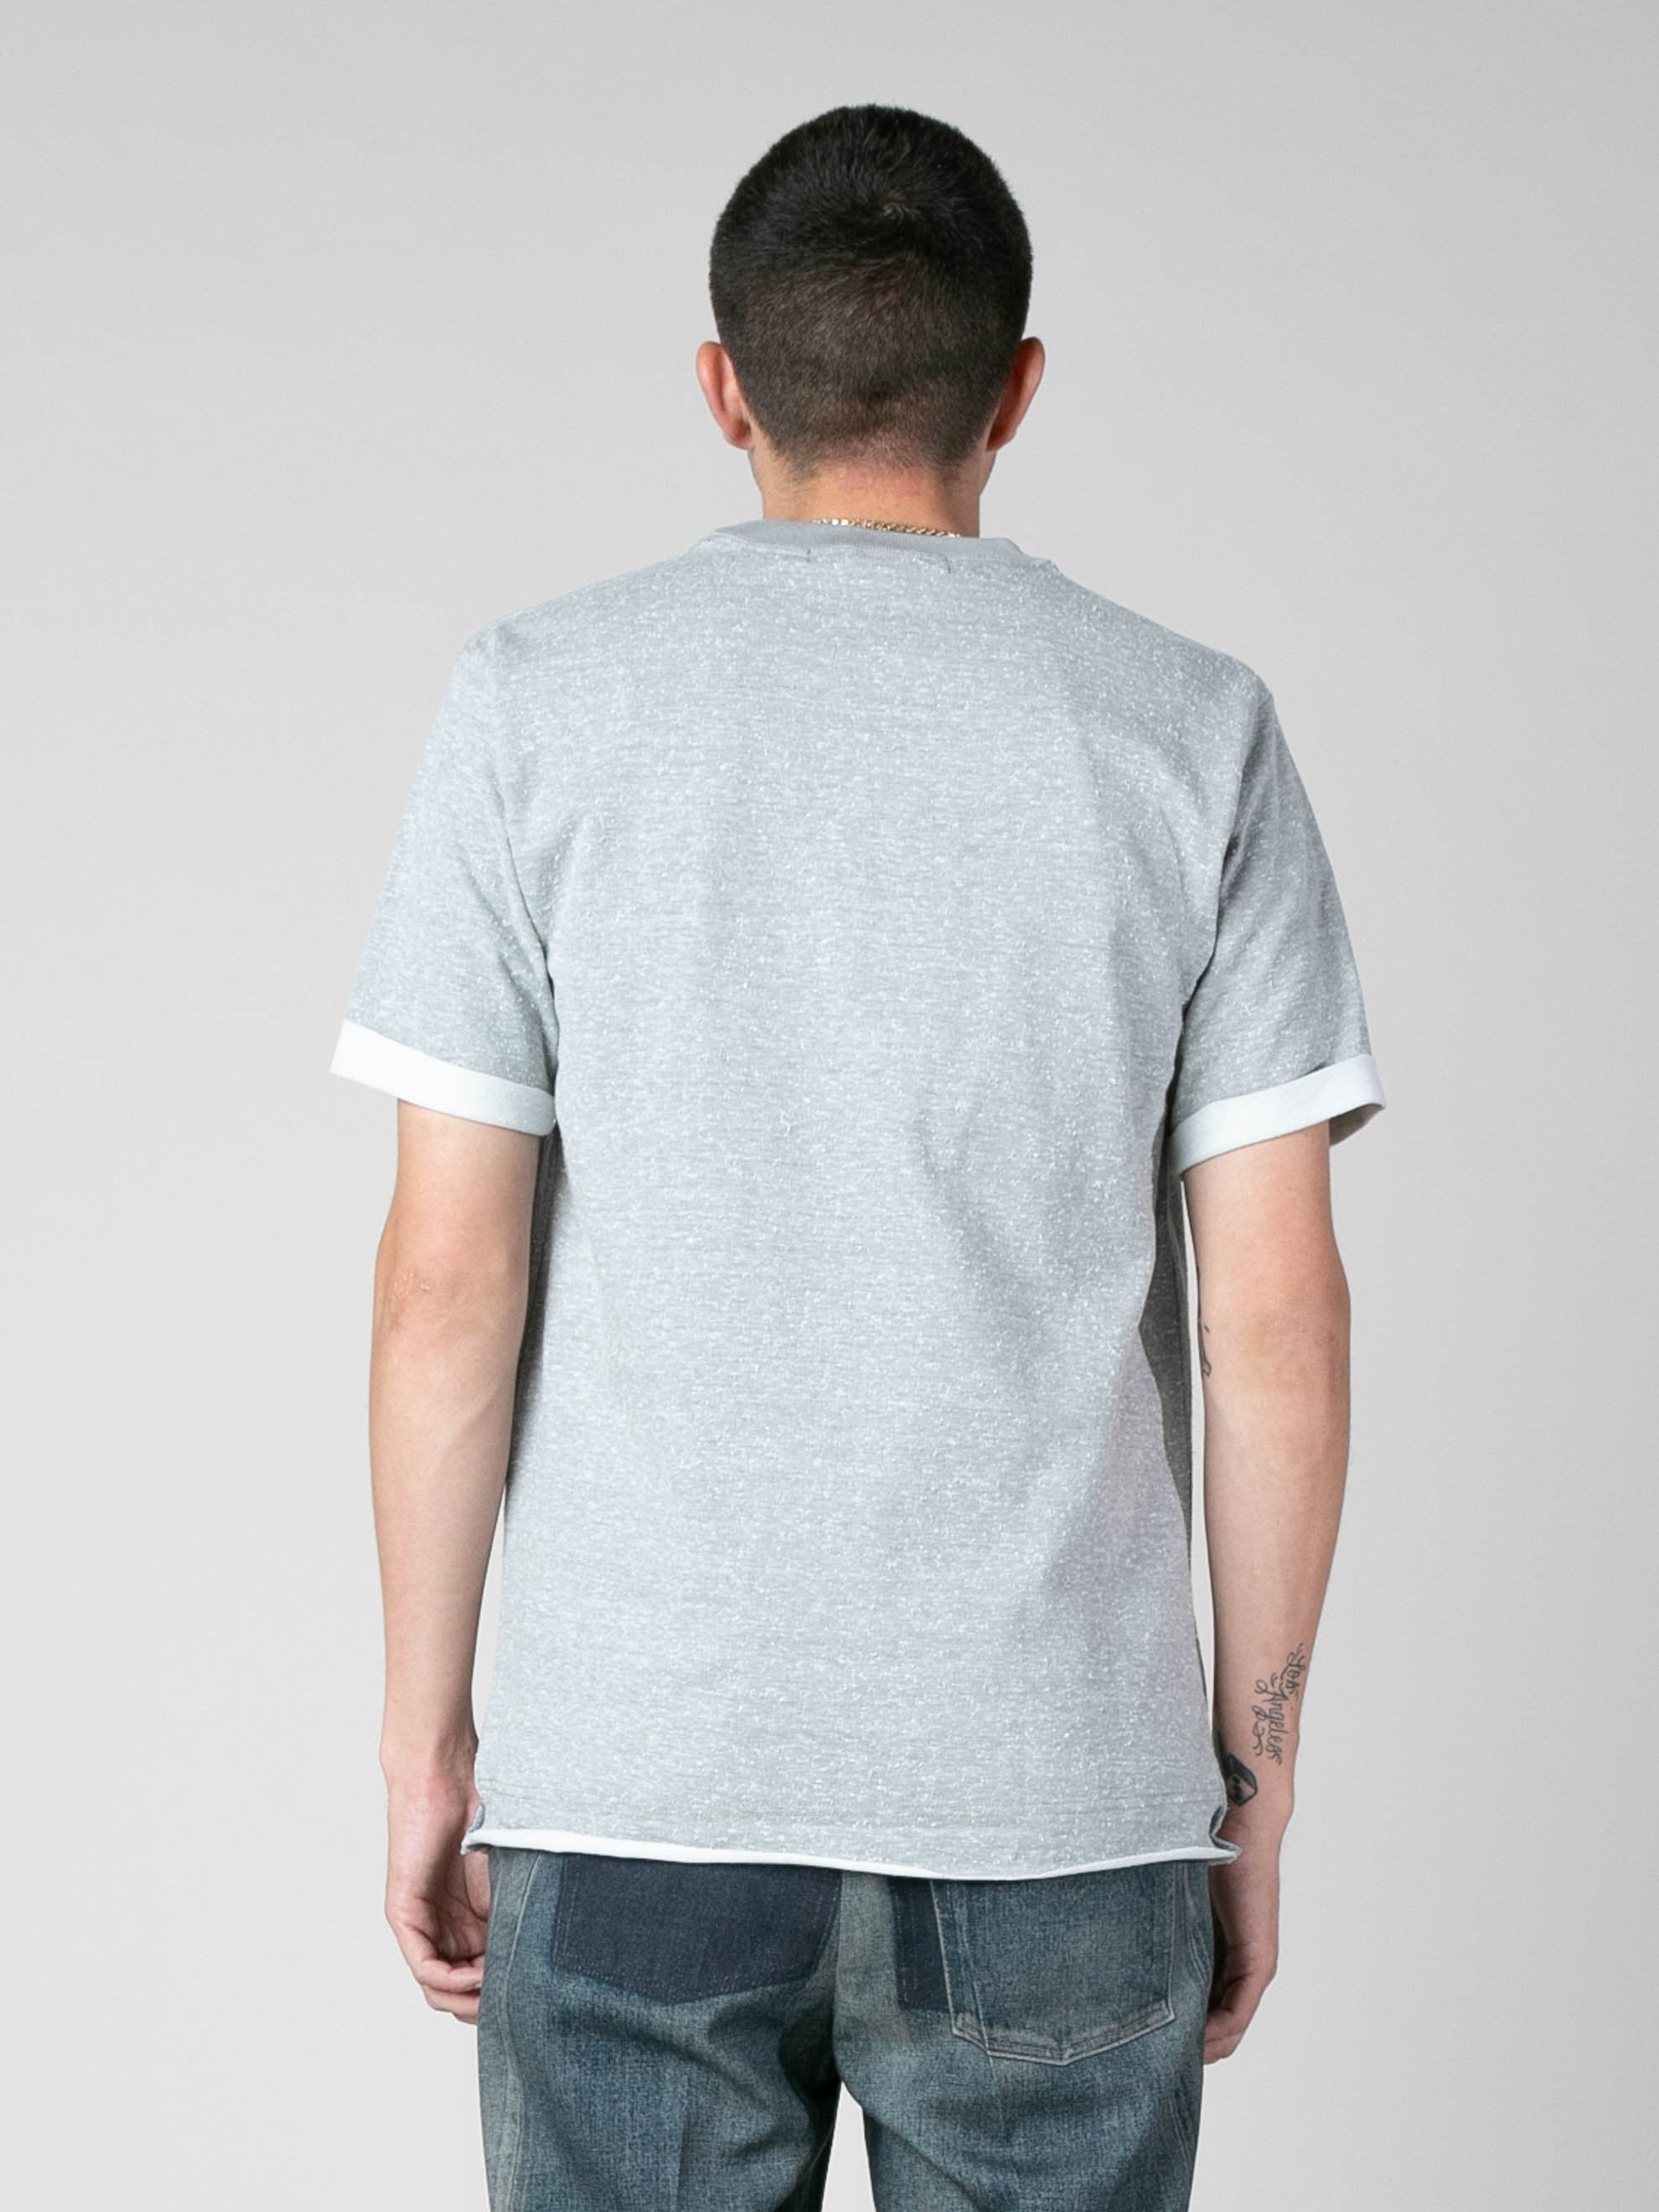 Heather Grey UCLA Short Sleeve Crewneck 6